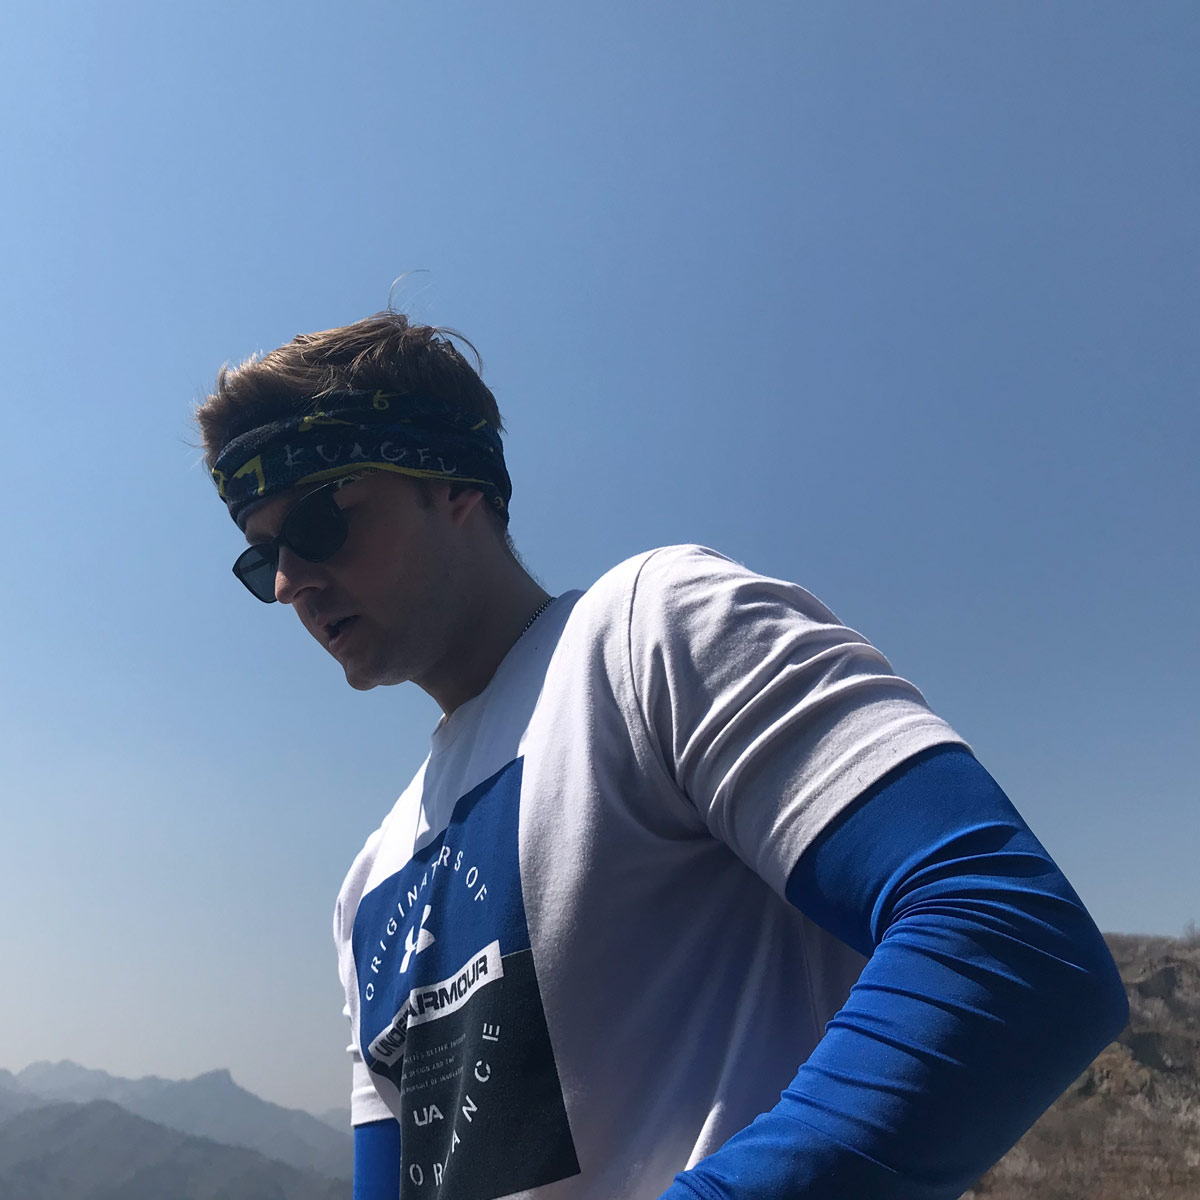 Personal Trainer John Wu running in the mountains outside Beijing